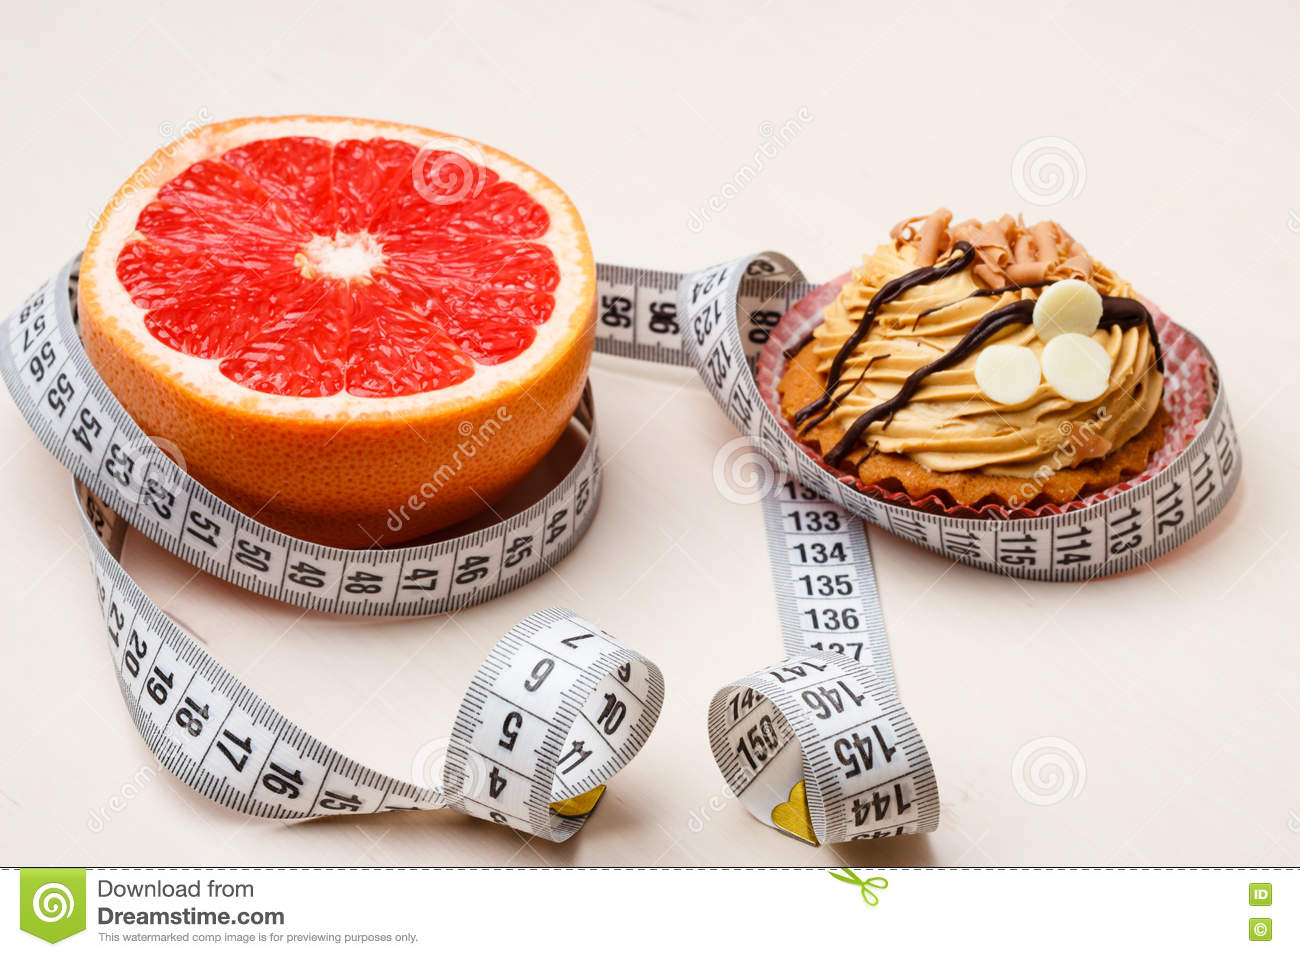 Grapefruit And Cake With Measuring Tape Diet Stock Photo Image Of Weight Junk 80003998